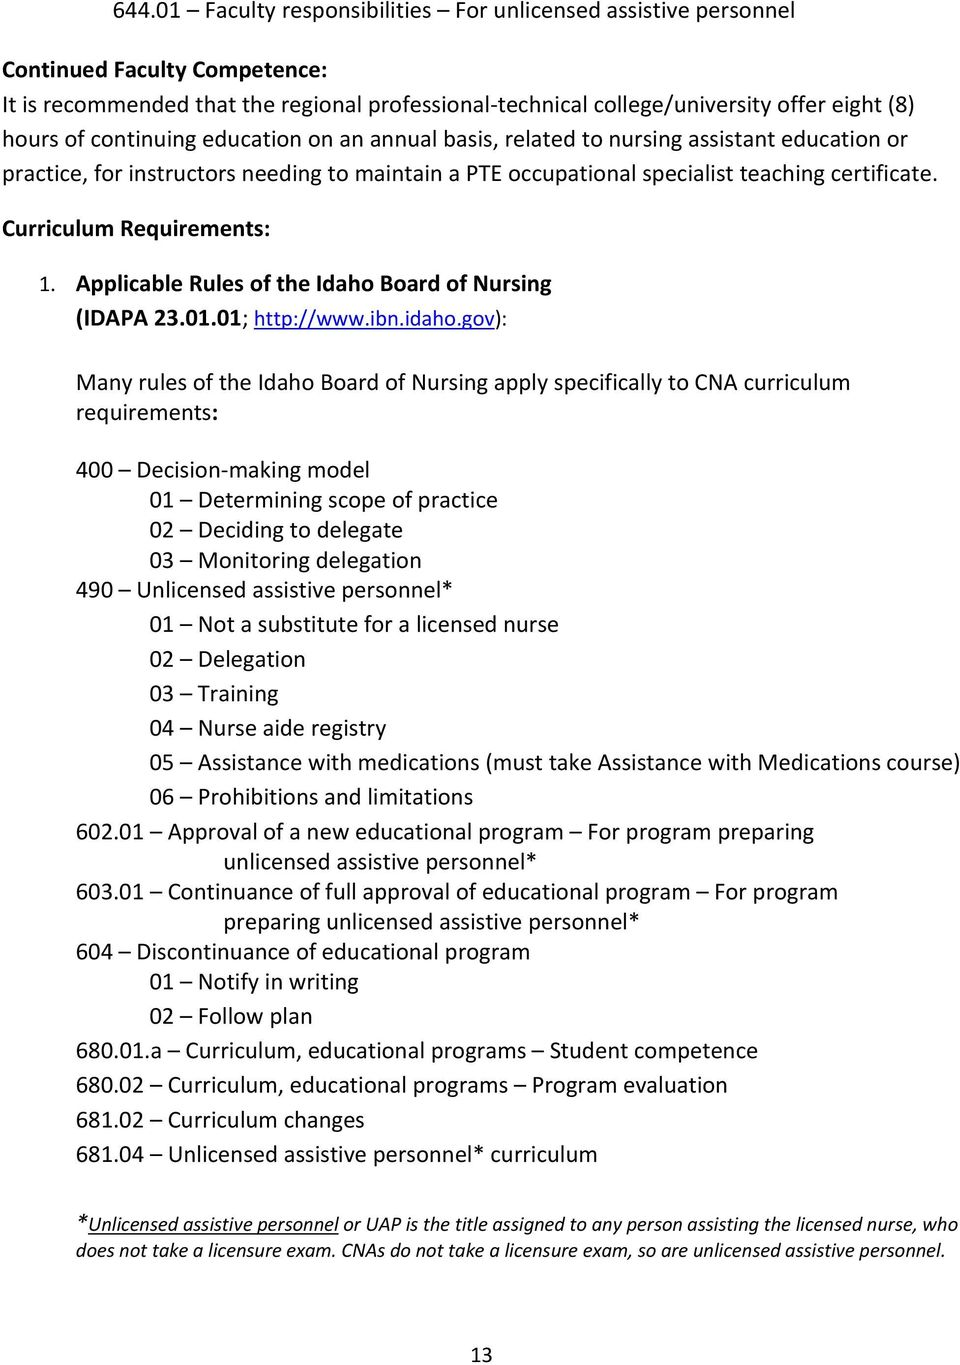 Curriculum Requirements: 1. Applicable Rules of the Idaho Board of Nursing (IDAPA 23.01.01; http://www.ibn.idaho.